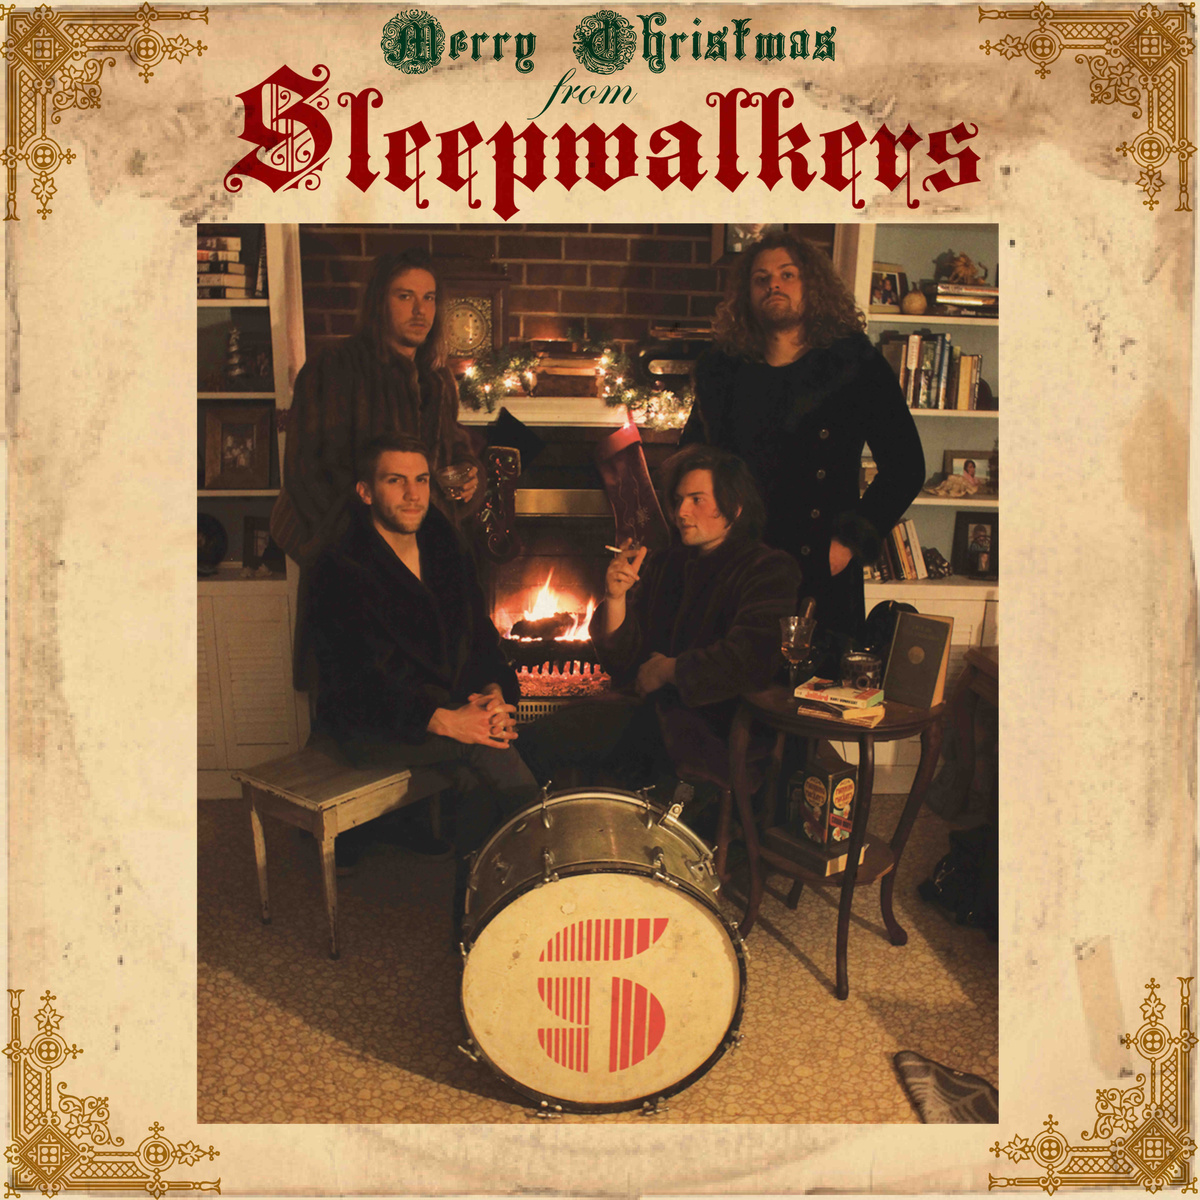 Sleepwalkers Christmas